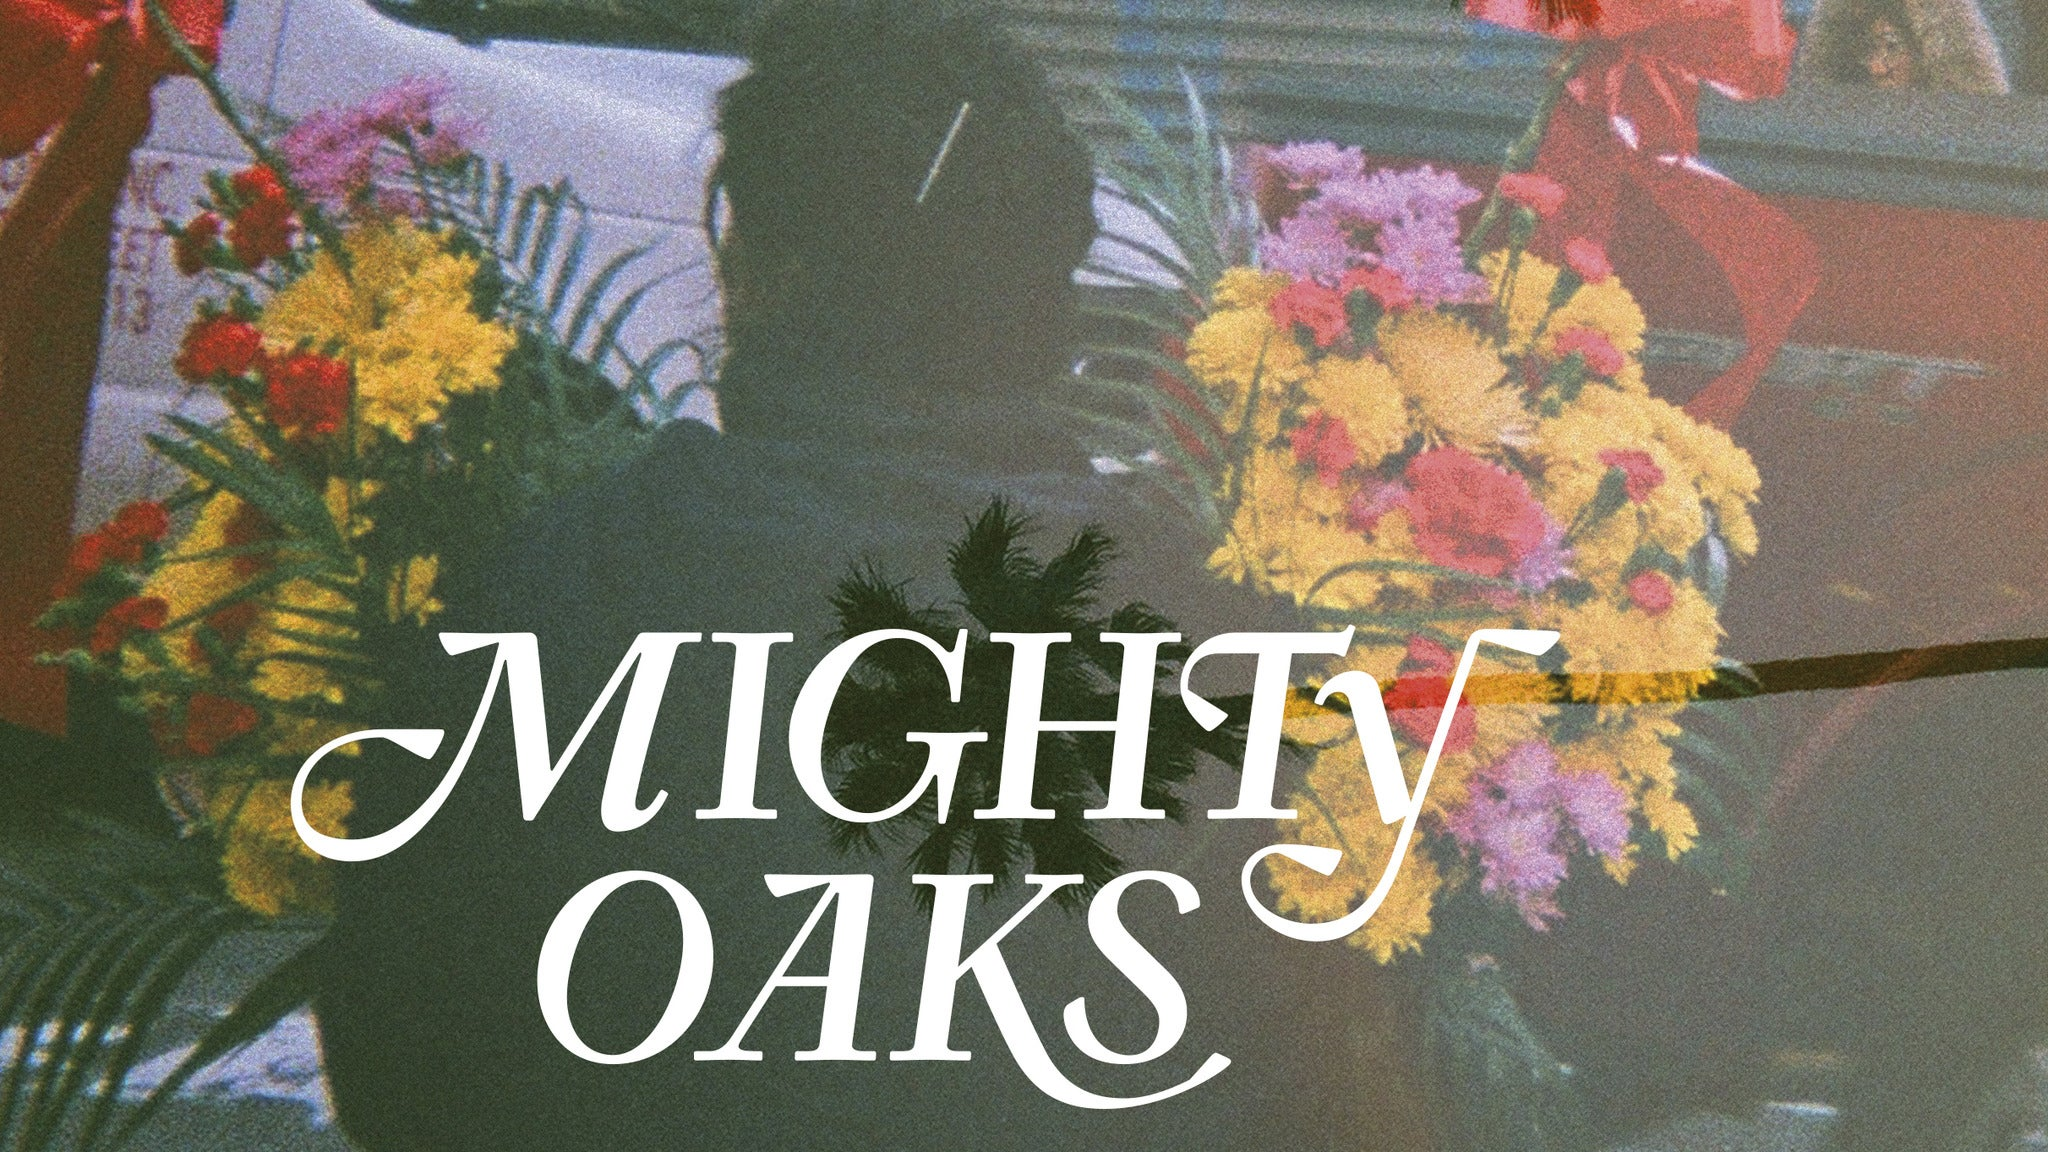 Mighty Oaks at Subterranean